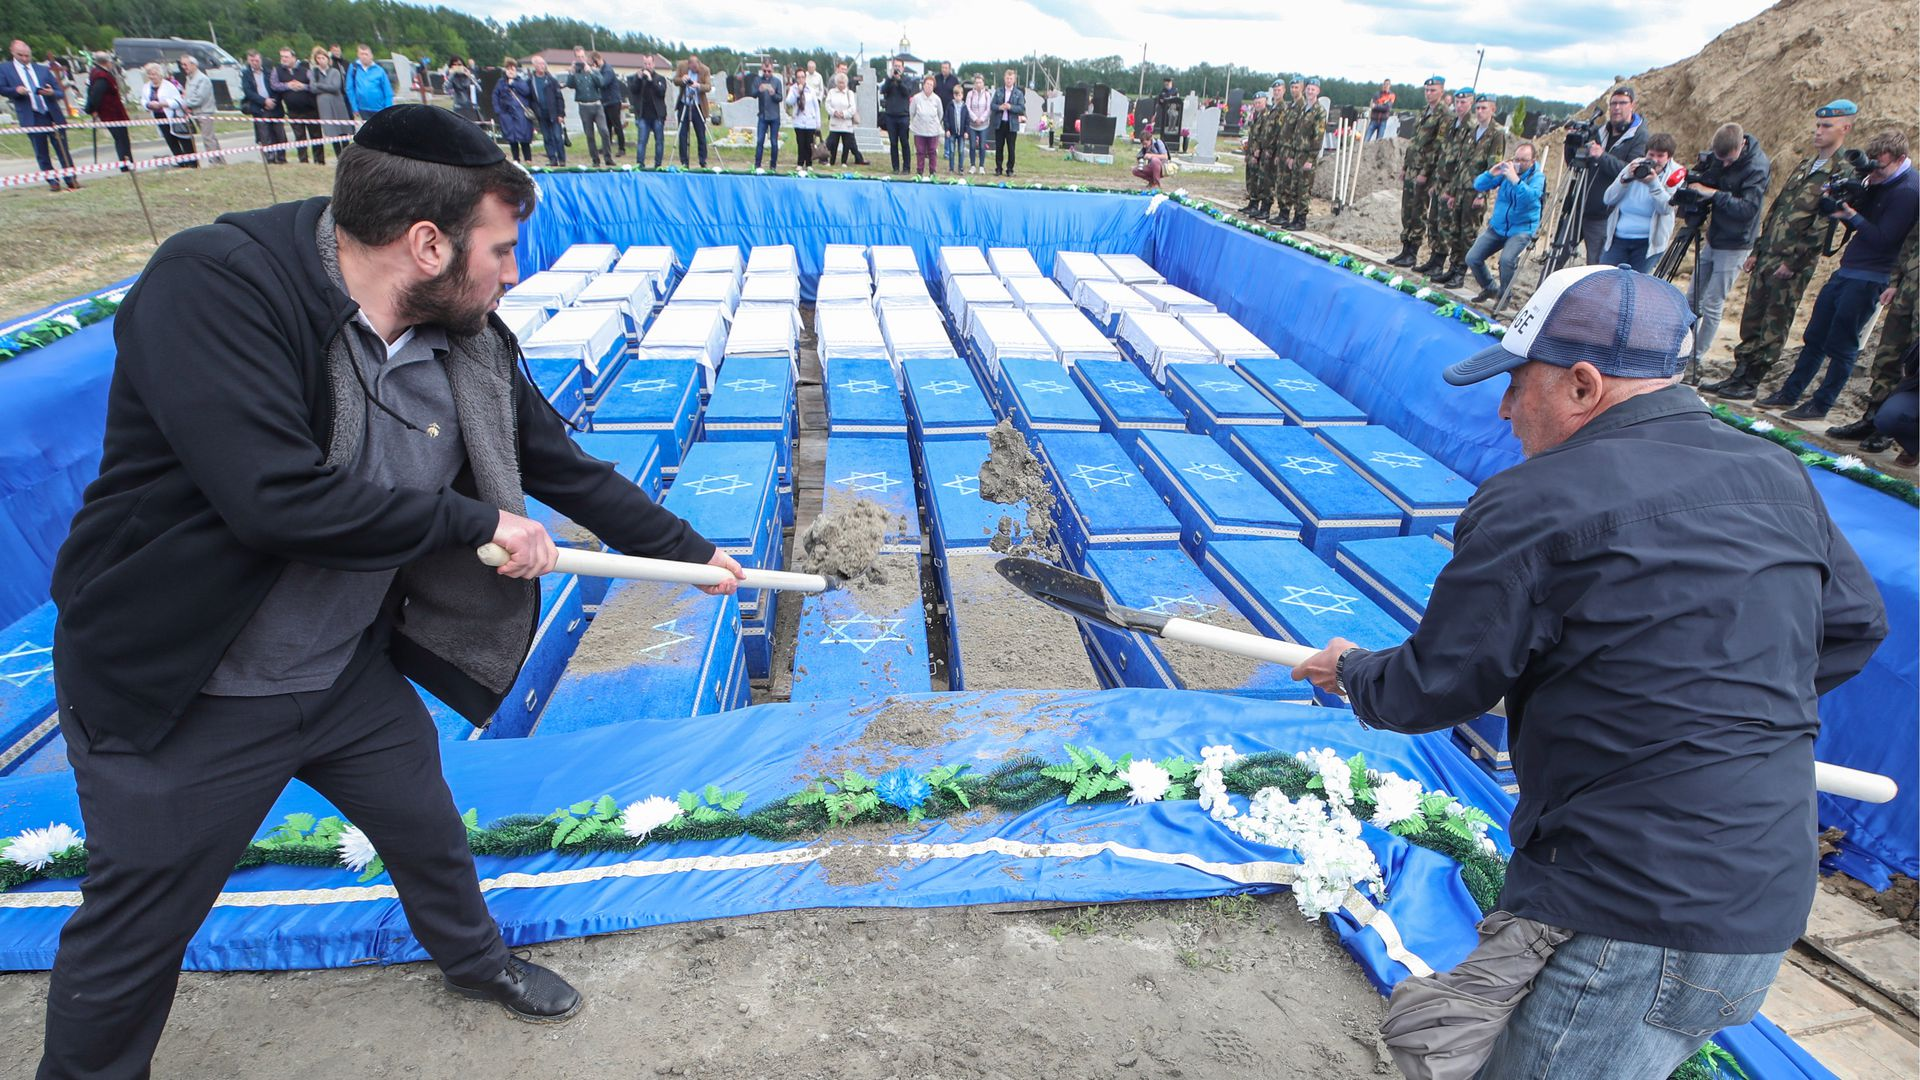 More than 1,000 Holocaust victims laid to rest in Belarus